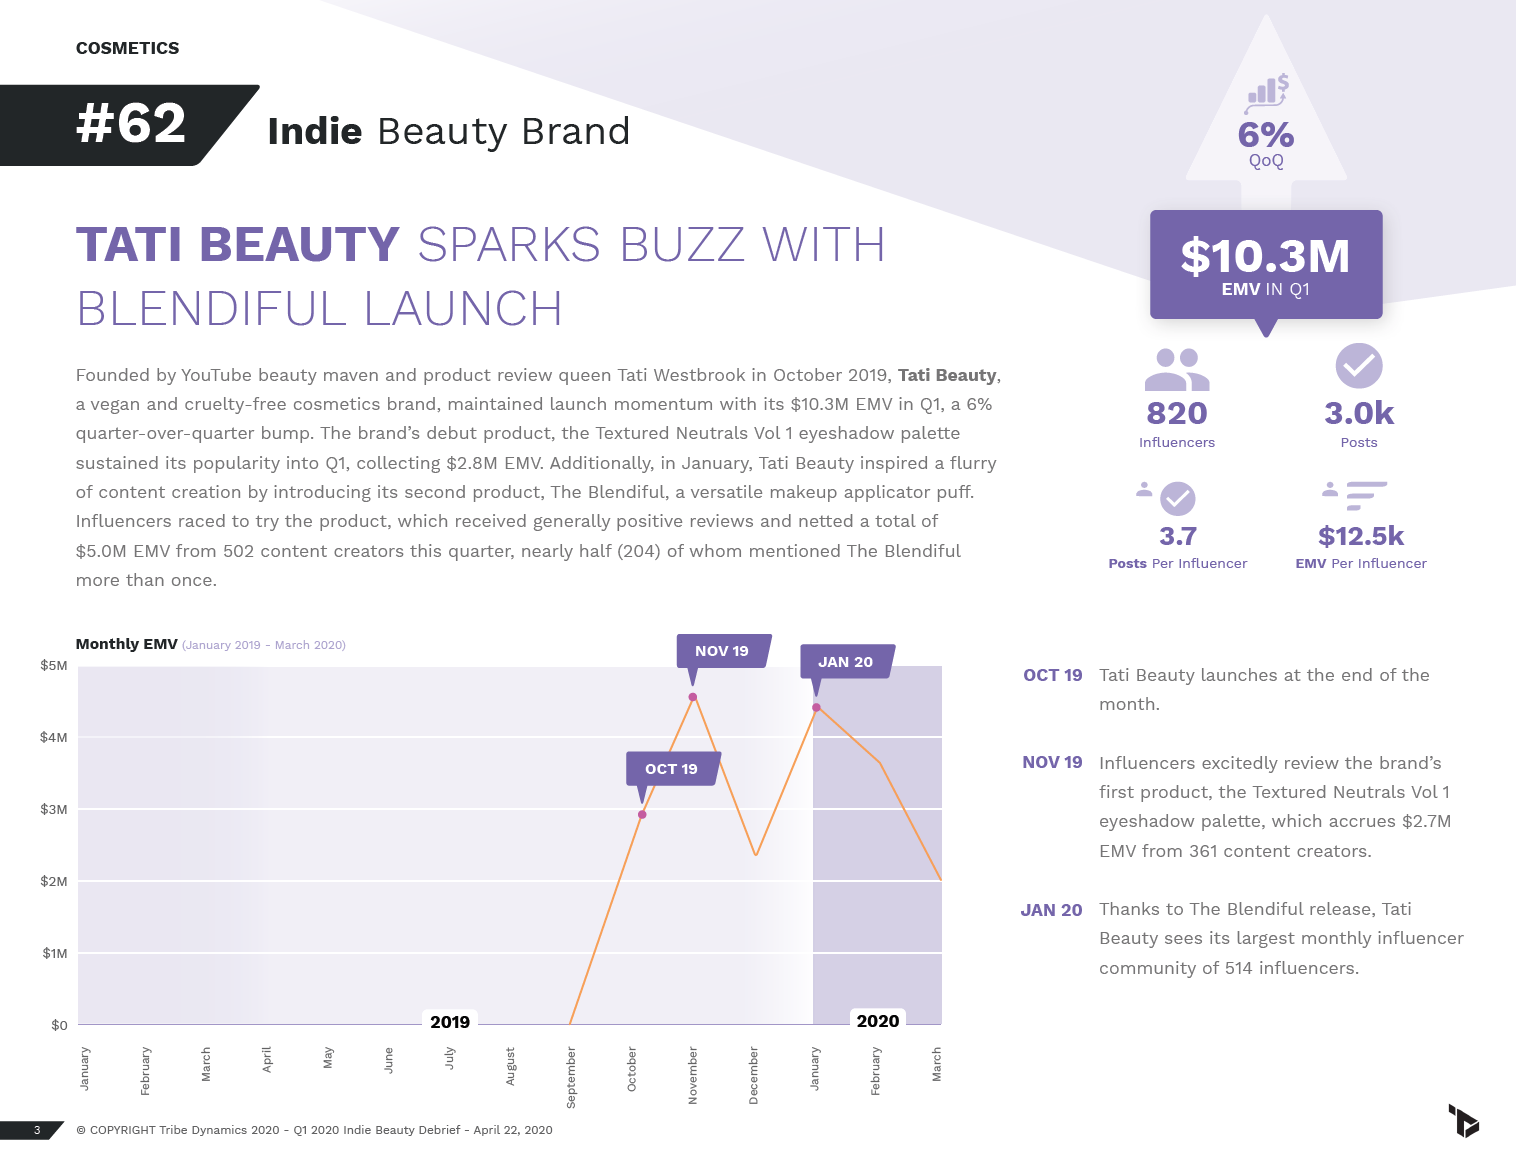 A page from Q1's U.S. Indie Beauty Debrief, featuring Tati Beauty's performance and influencer strategy.